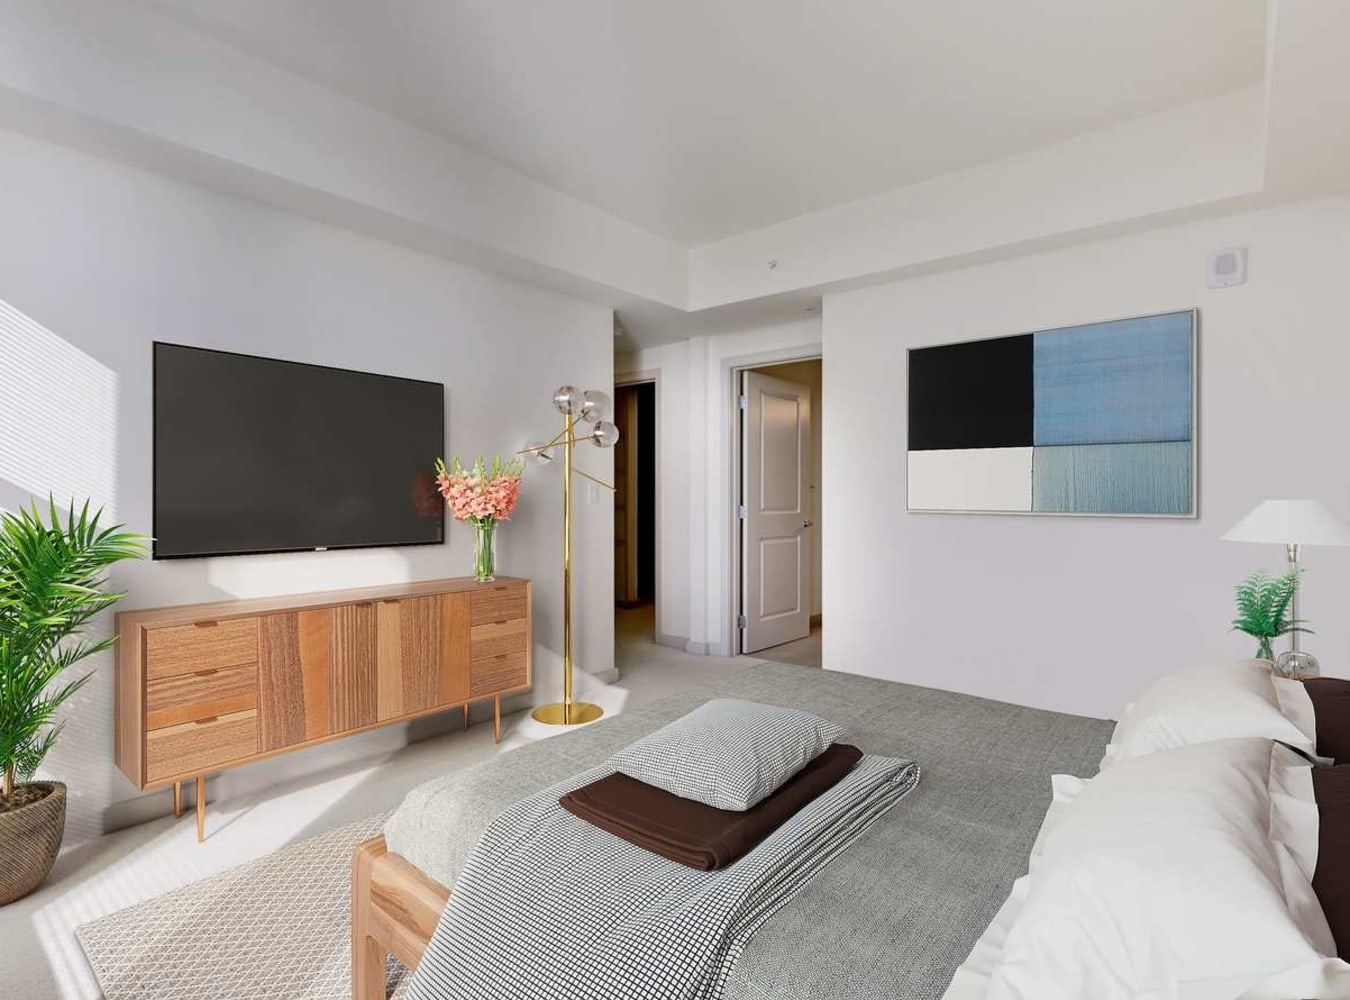 The main bedroom with large windows at Solaire 7077 Woodmont in Bethesda, Maryland